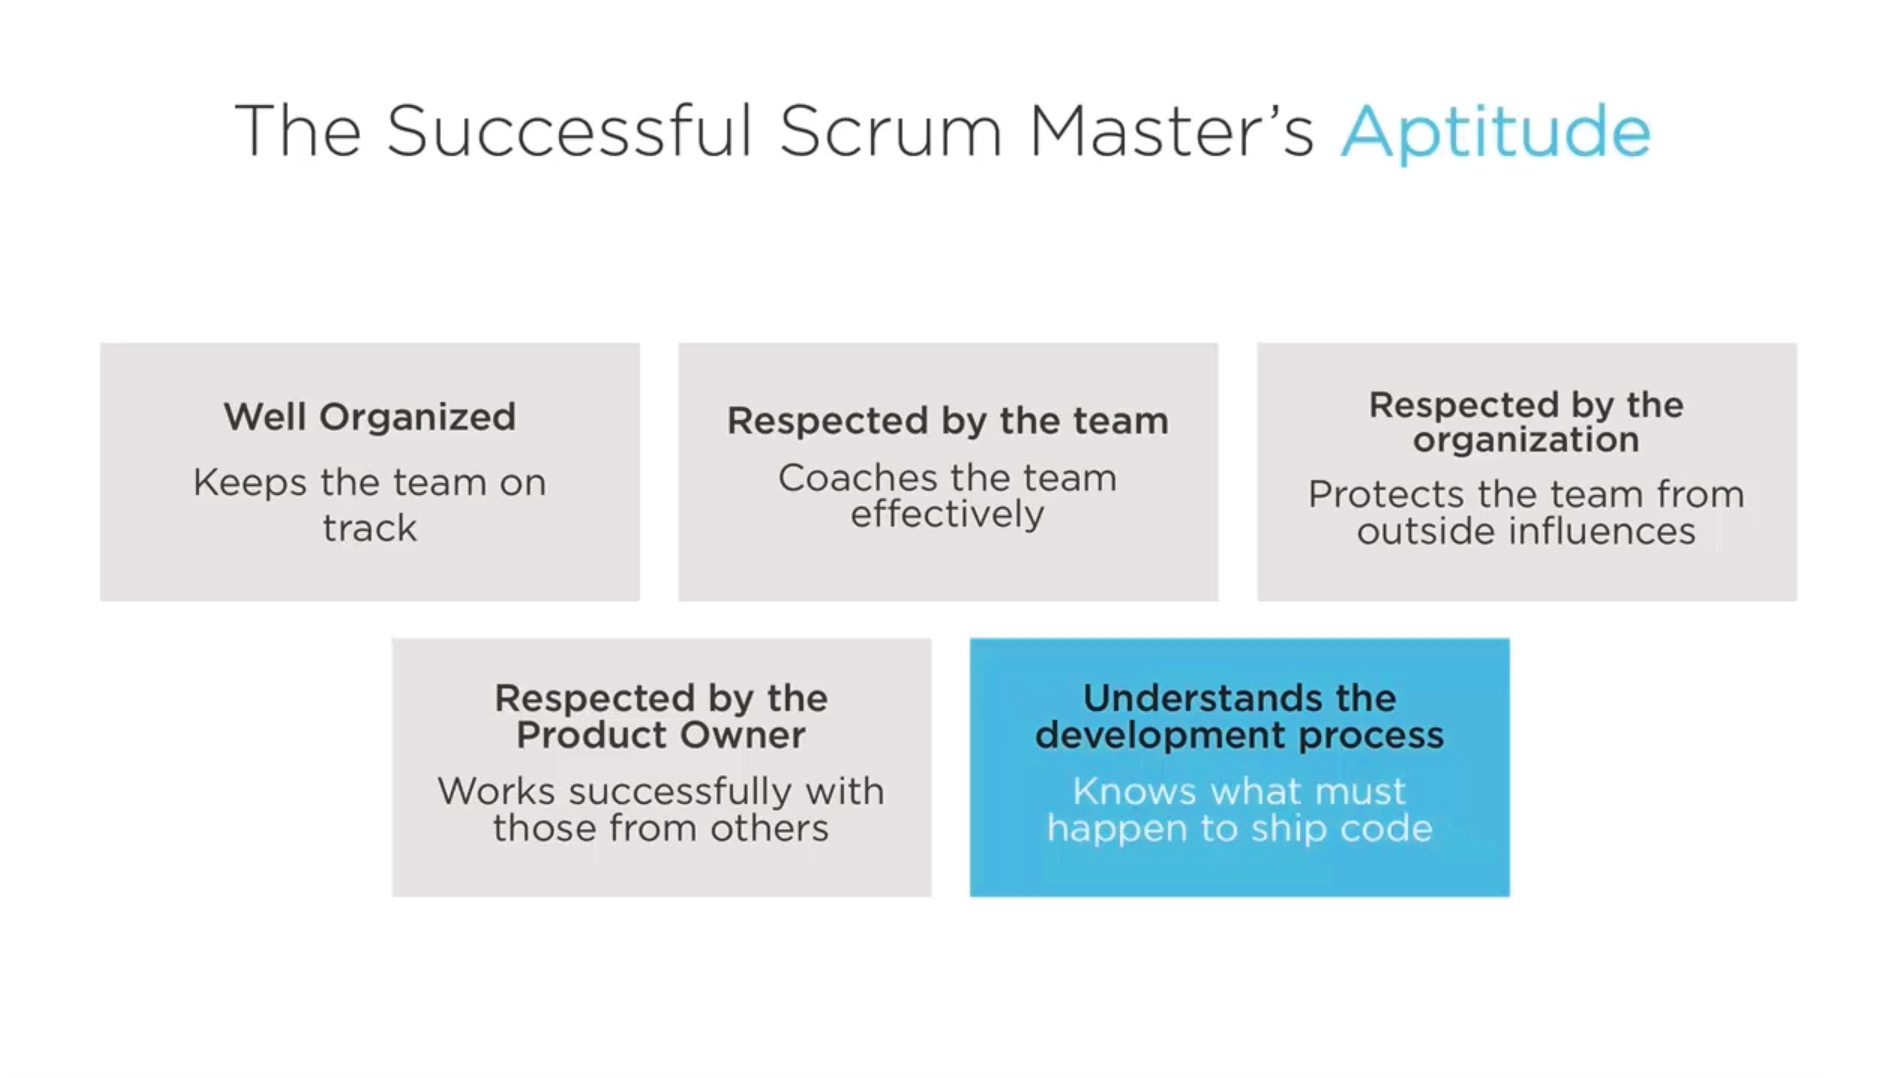 The Aptitude of a Successful Scrum Master - Well organized - Respected by the team - Respected by the organization - Respected by the Product Owner - Understands the Development Process